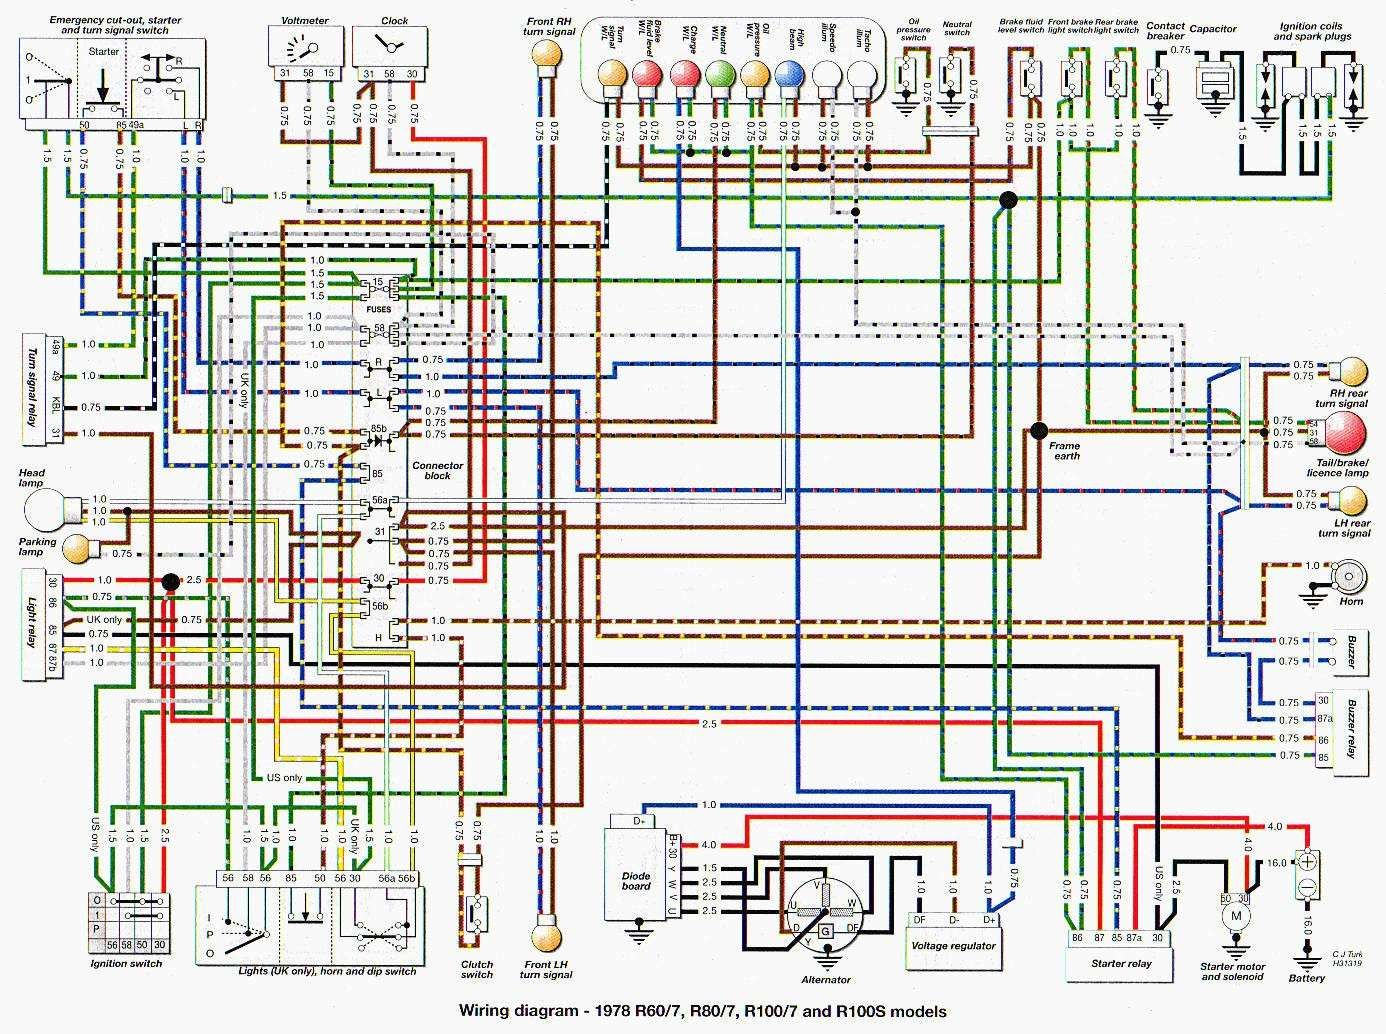 Bmw G650 Wiring Diagram - Fusebox and Wiring Diagram symbol-worry -  symbol-worry.parliamoneassieme.it | Bmw G 650 Wiring Diagram |  | diagram database